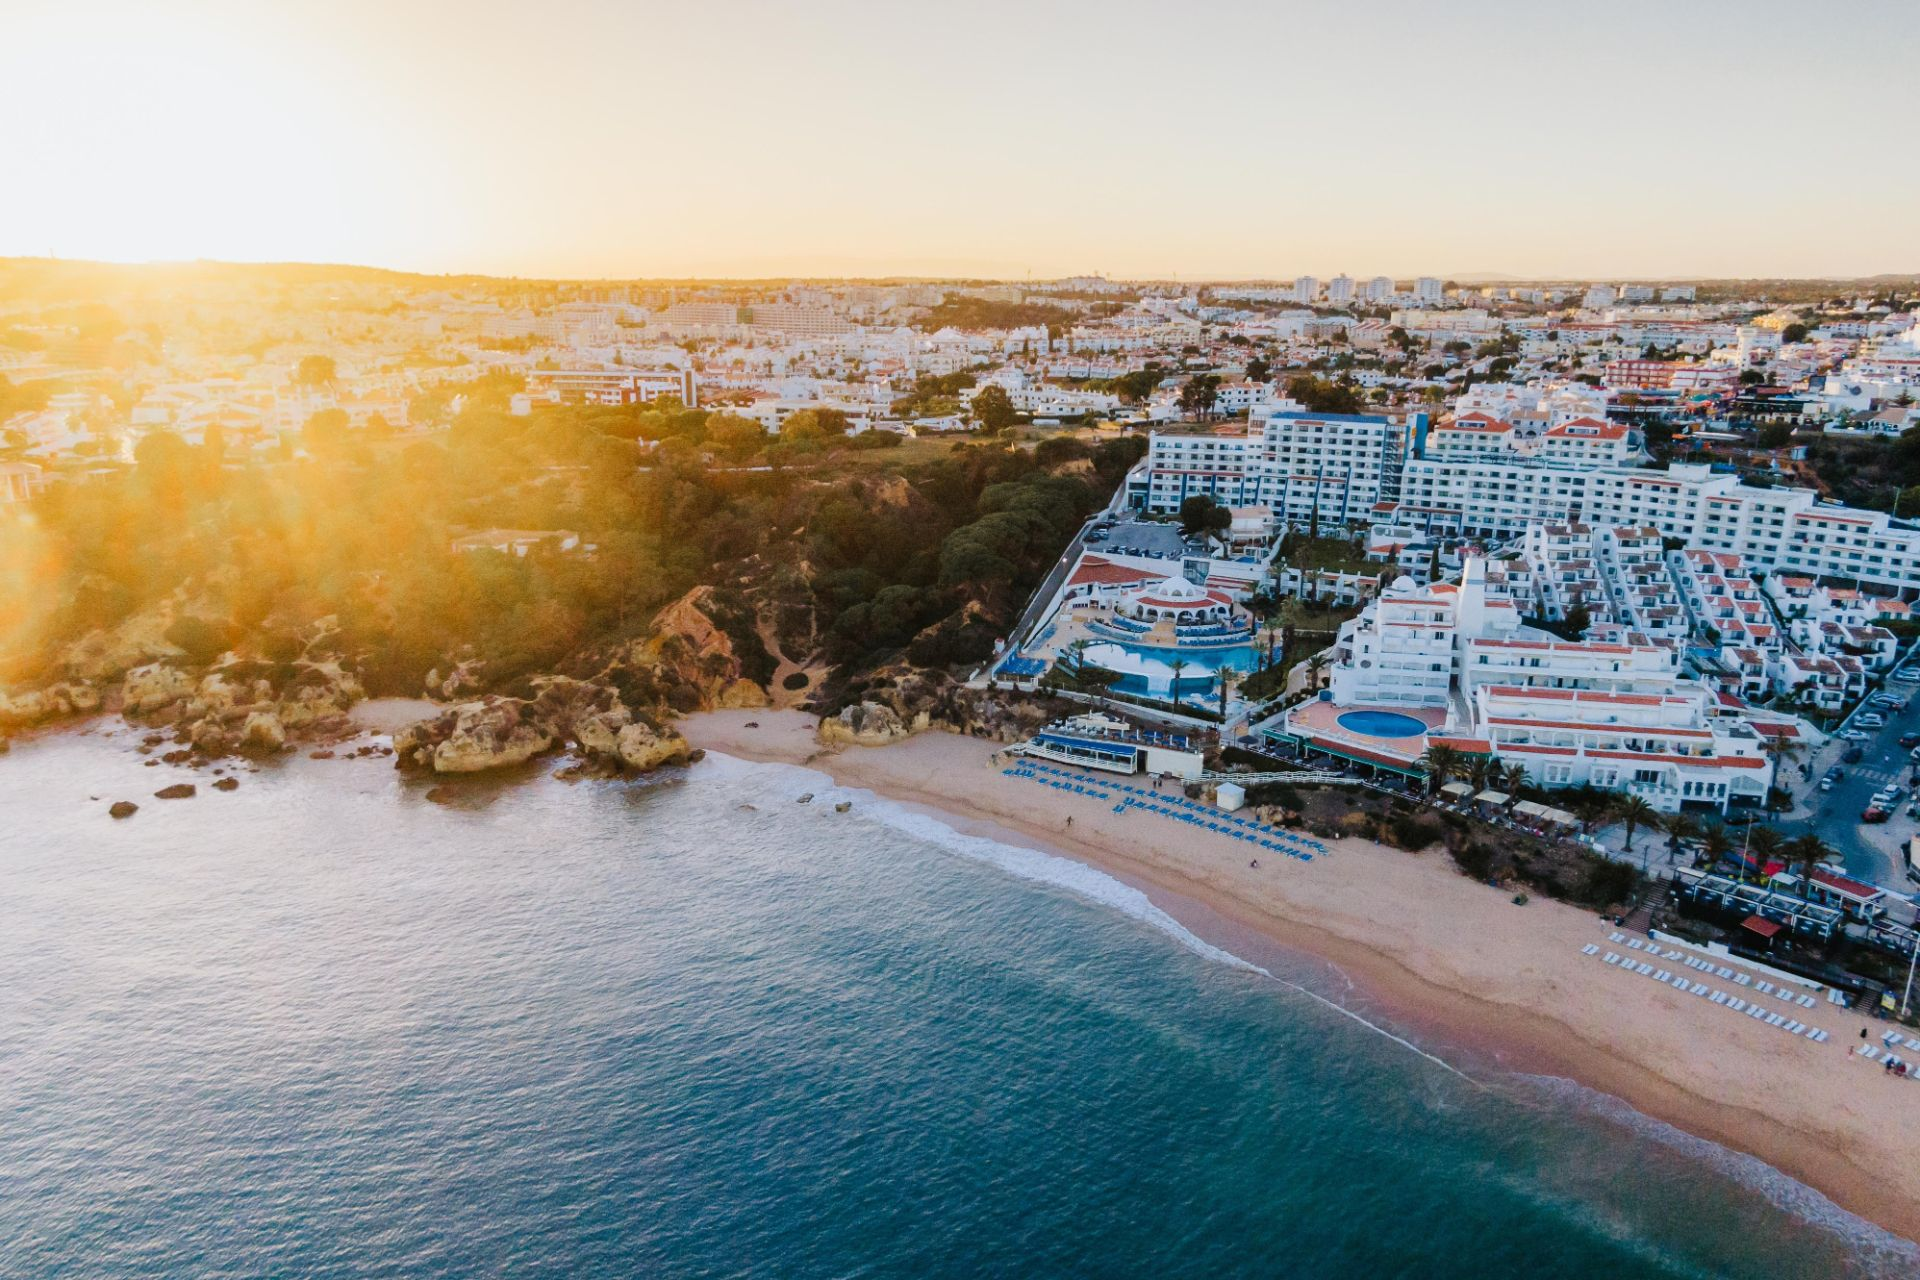 gorgeous-mediterranean-seaside-resort-at-golden-hour-blue-sea-white-sandy-beach-and-white-houses-in-town